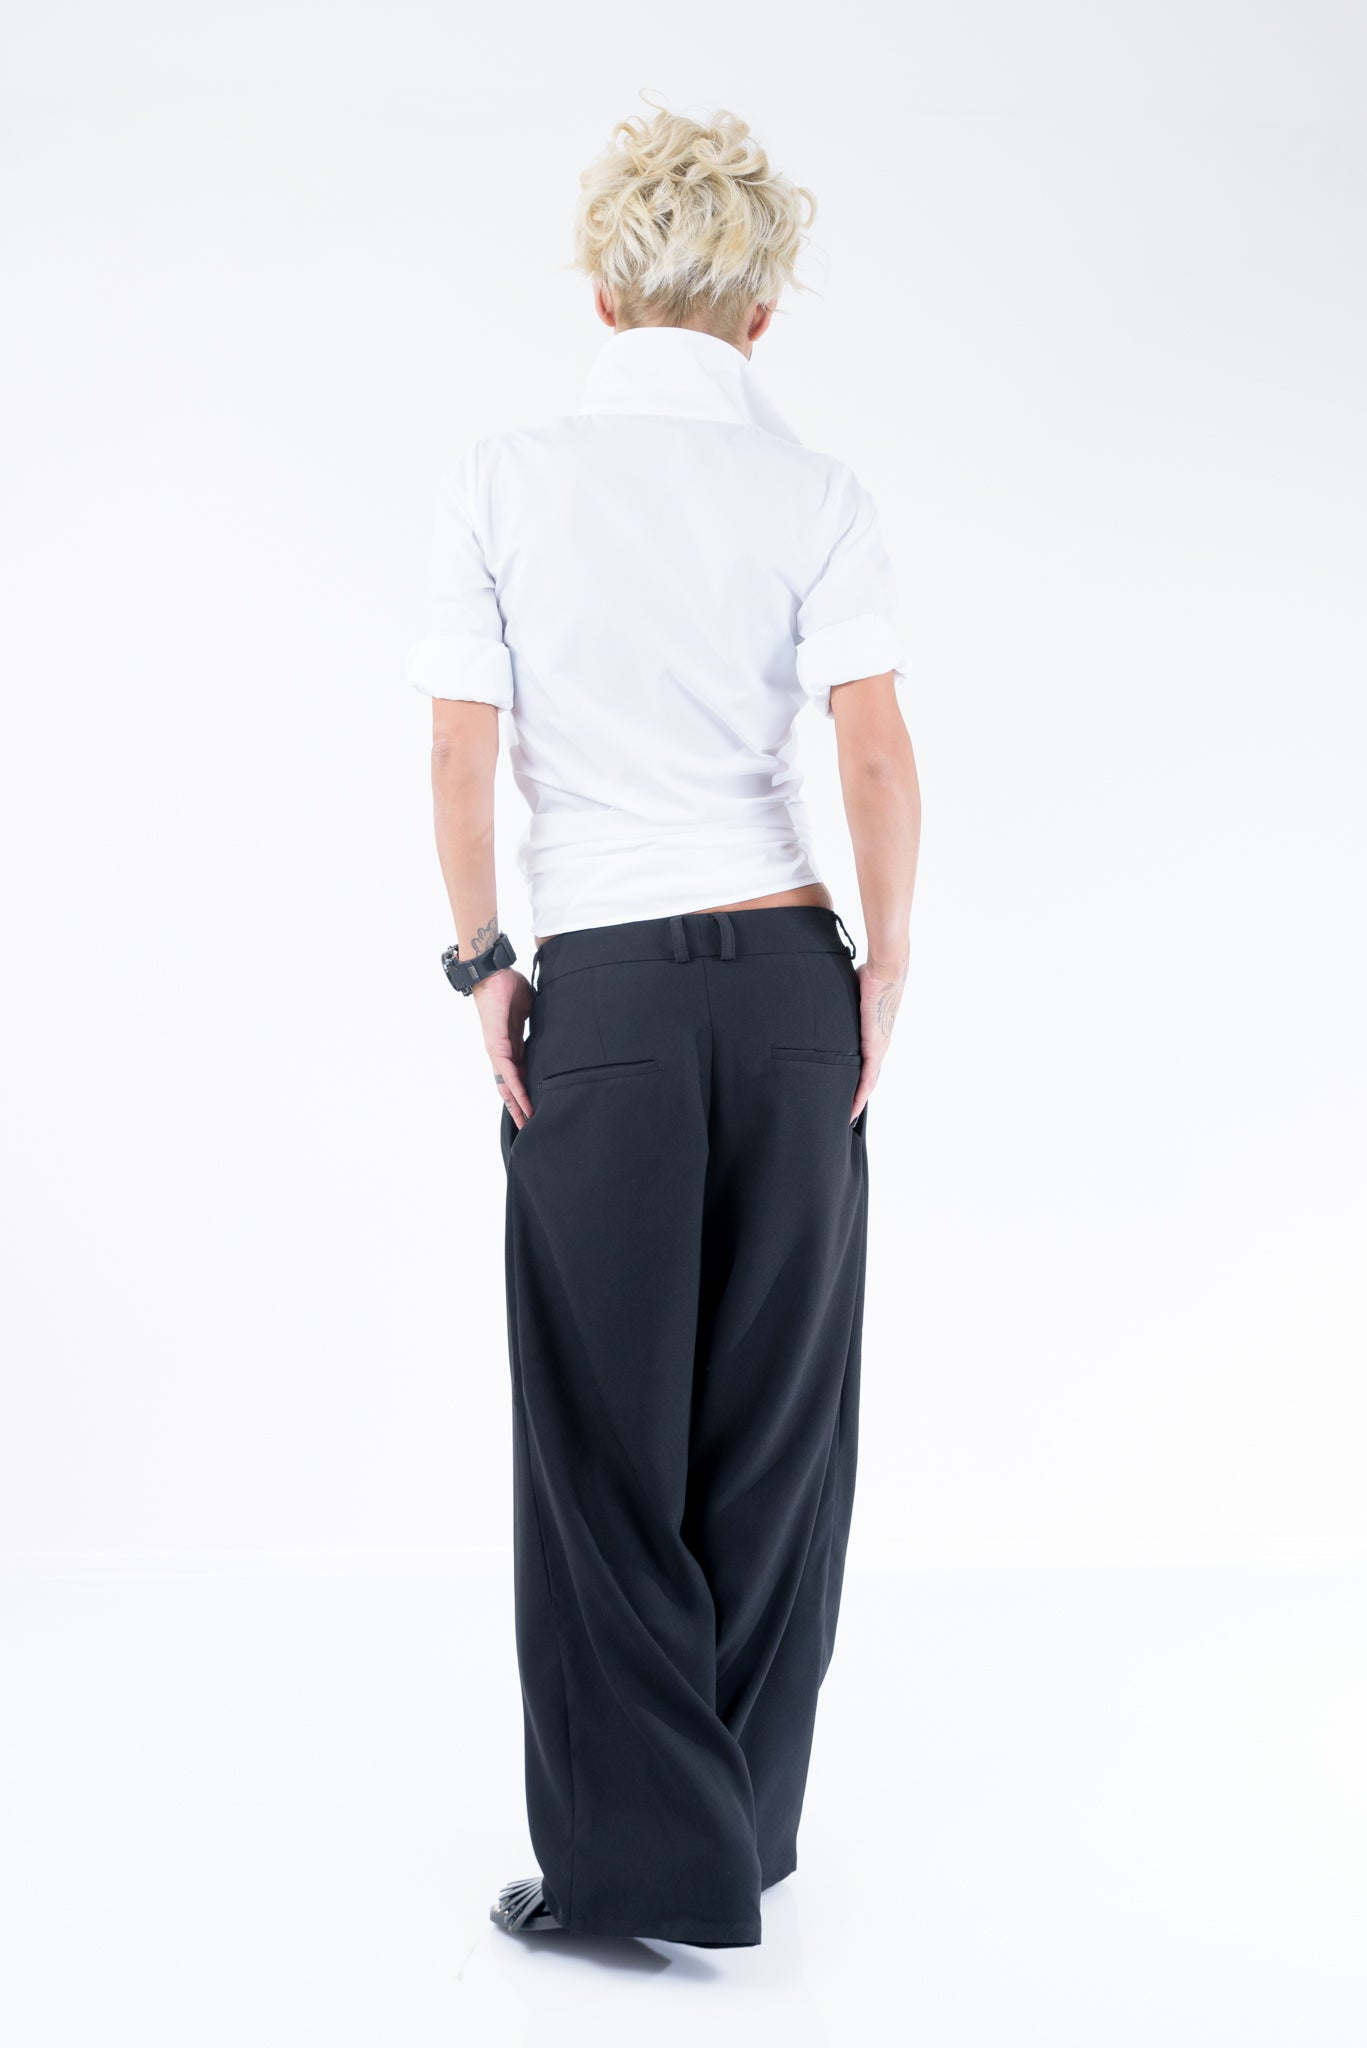 Urban Chic Loose Pants - Clothes By Locker Room